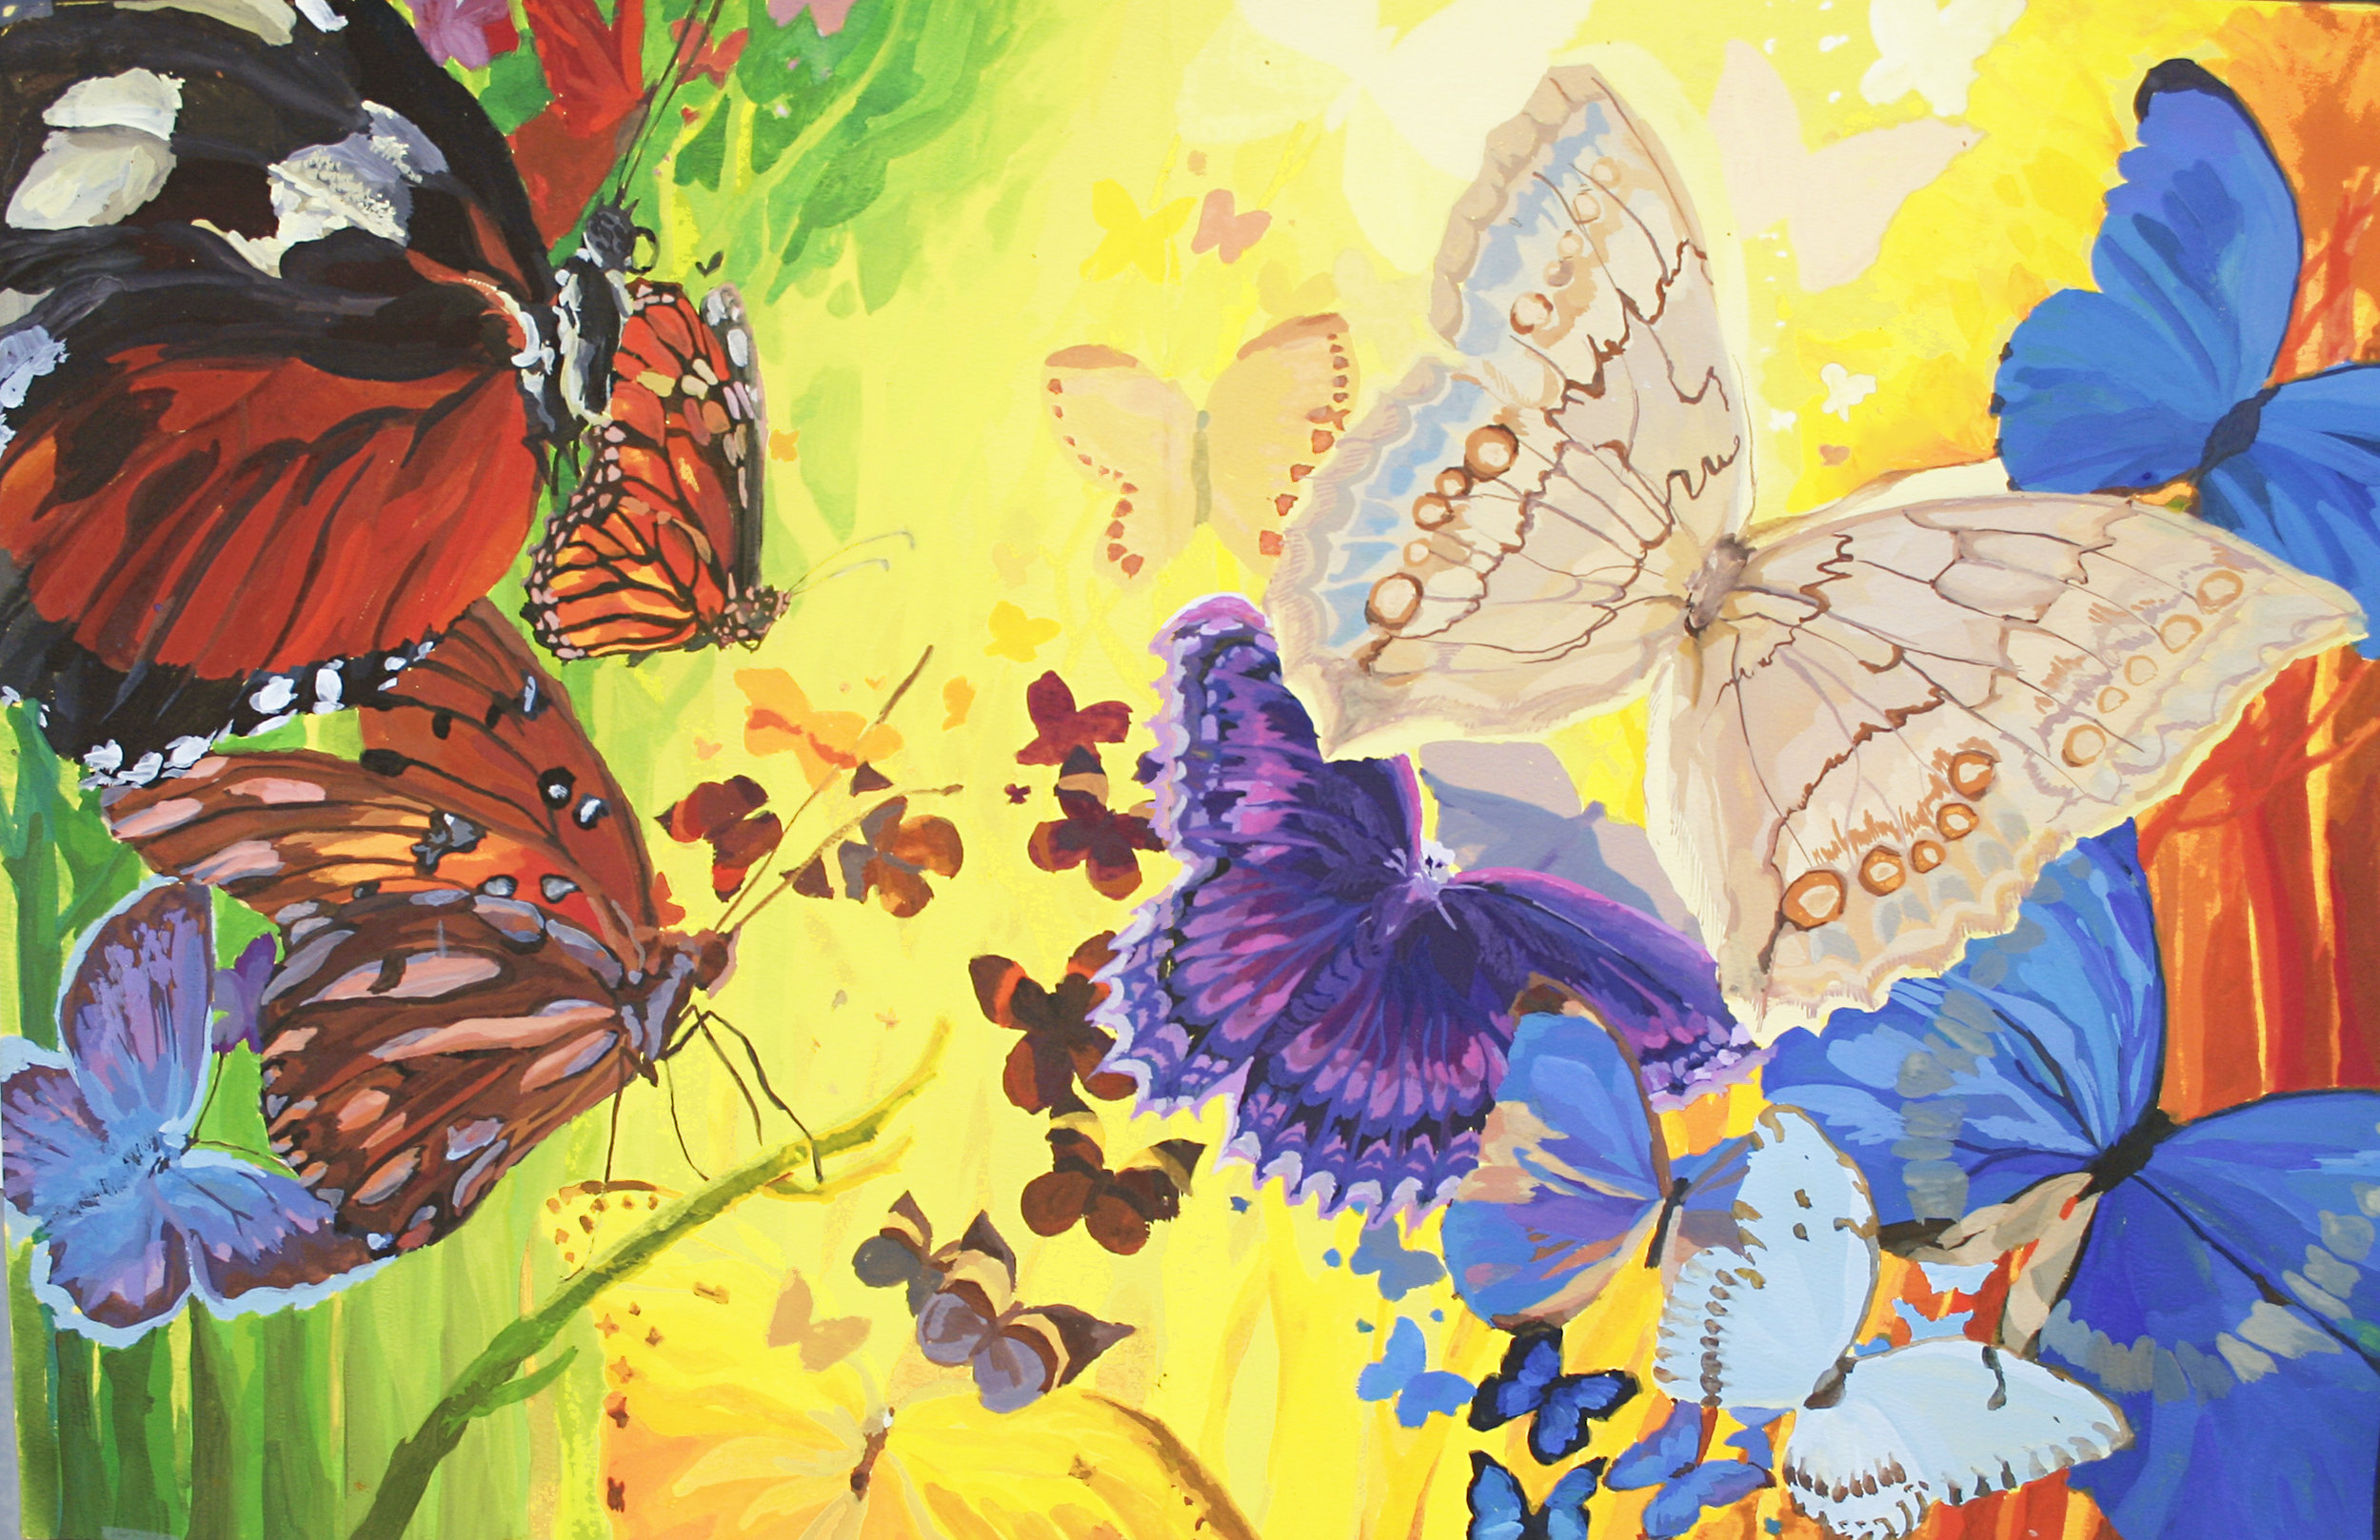 When_God_Made_Color_09_Butterflies_in_Forest for print.jpg